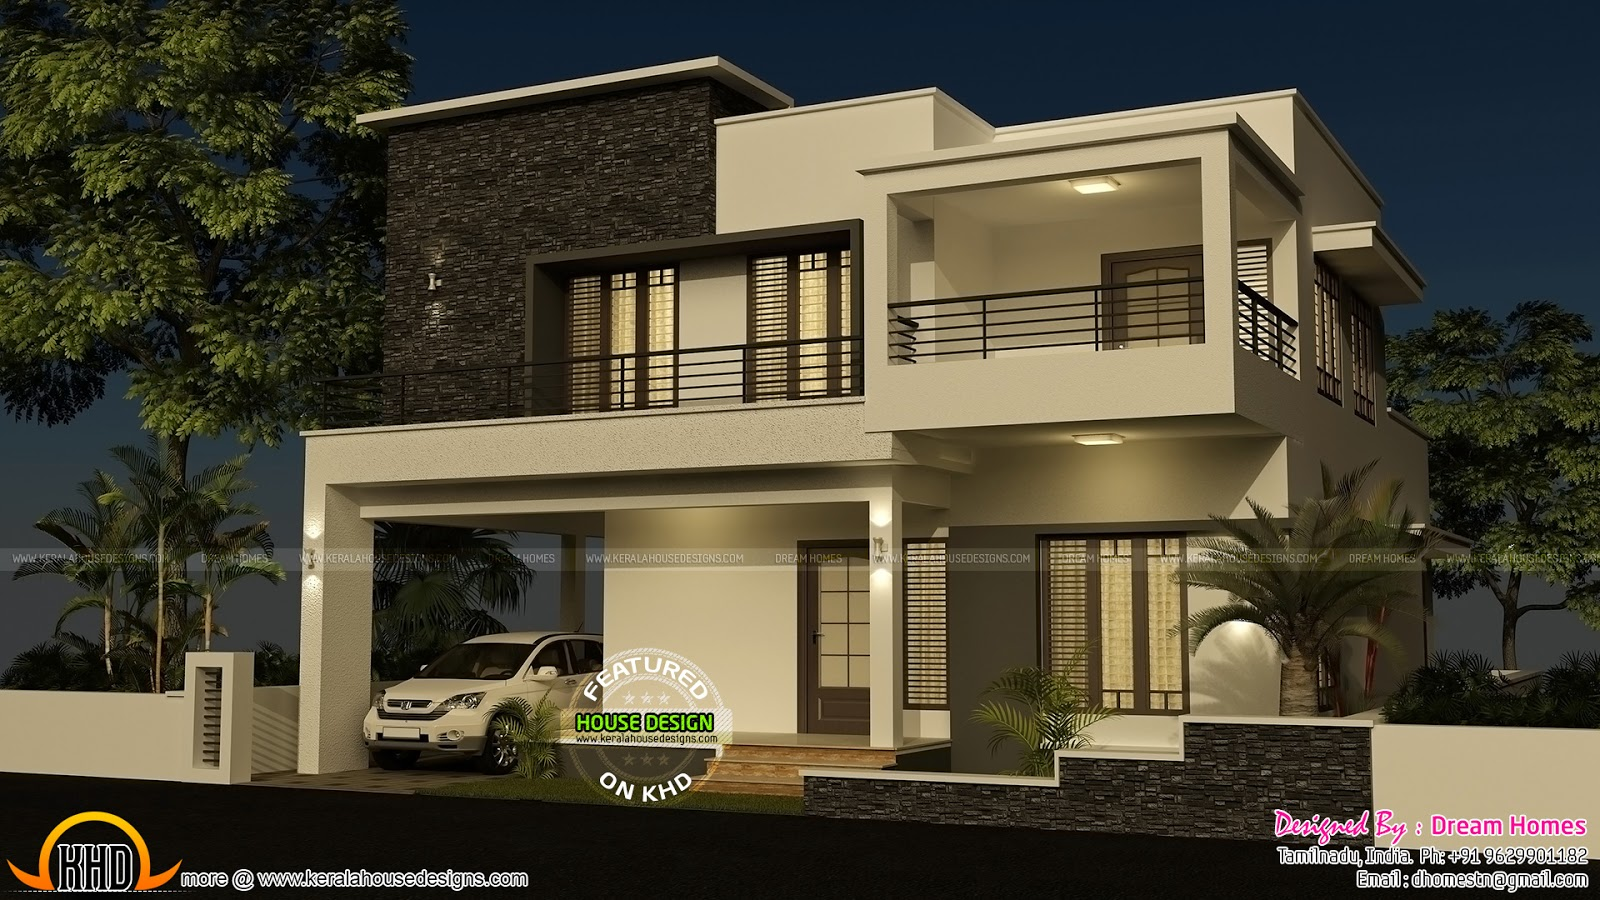 4 bedroom modern house with plan kerala home design and floor plans 4 bedroom modern house plans